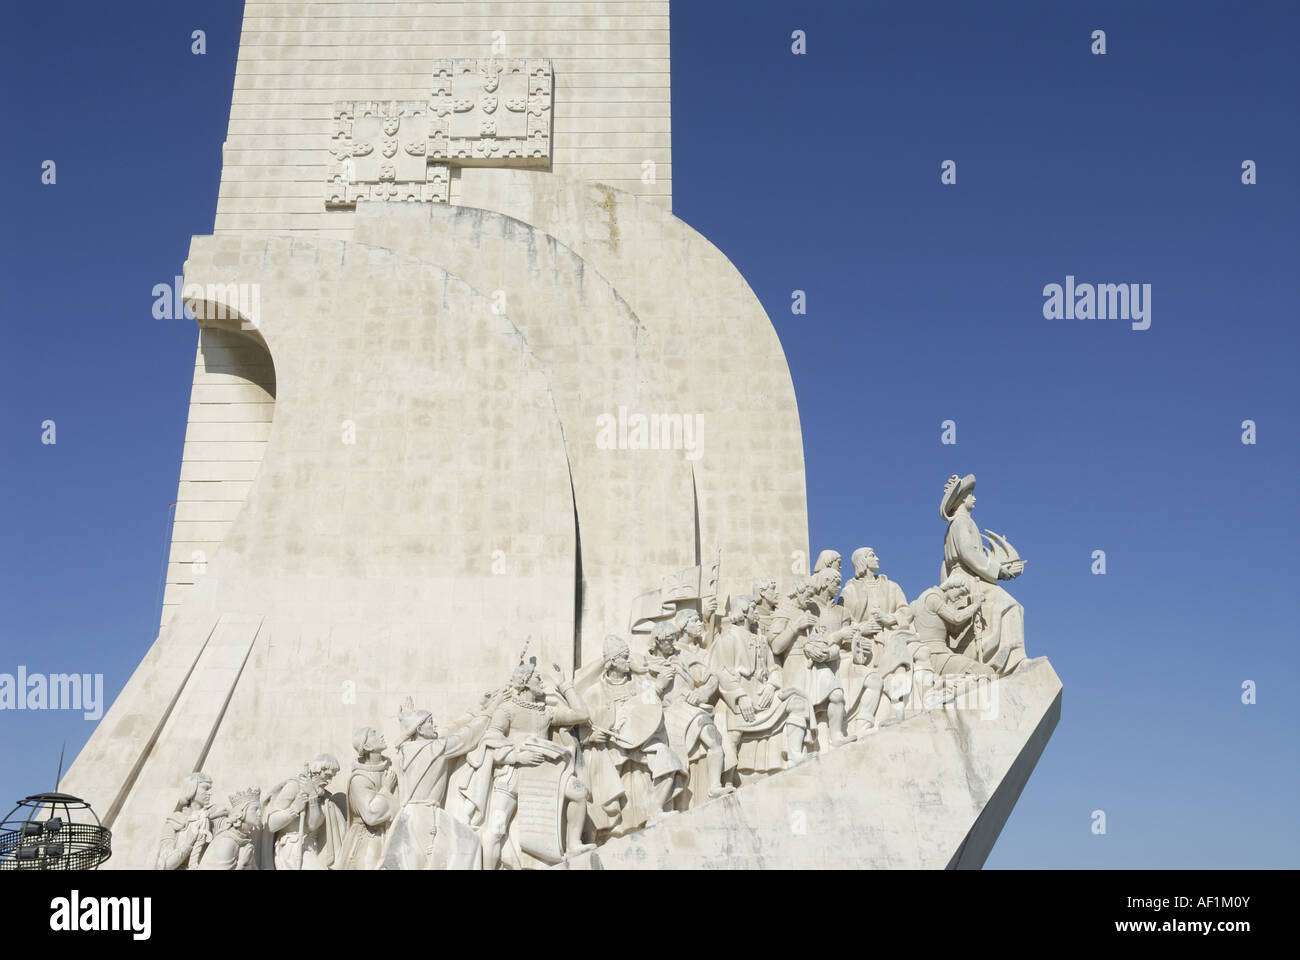 Monument to the Discoveries Lisbon Portugal - Stock Image